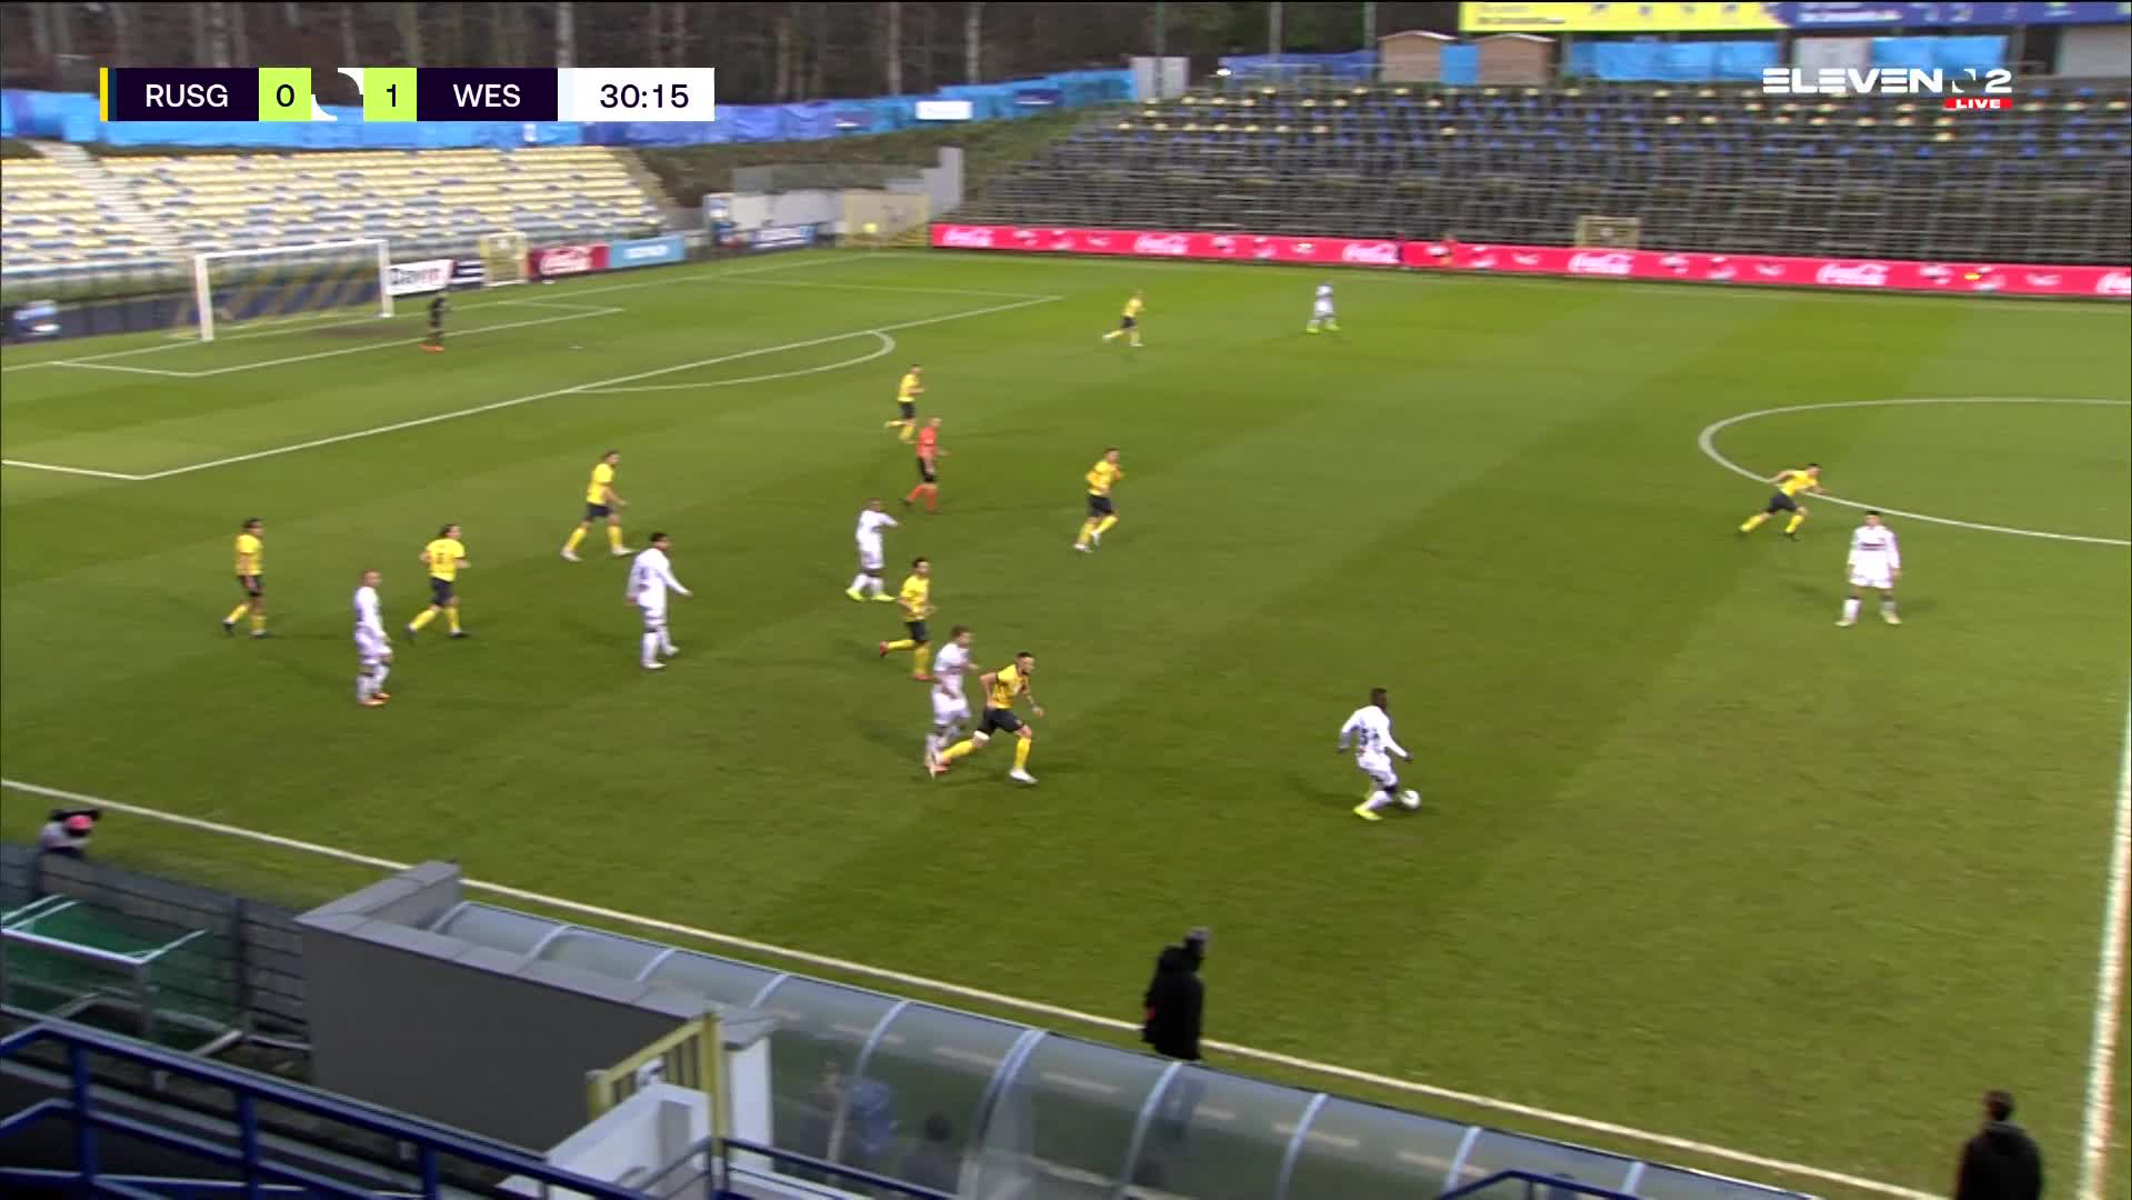 But Deniz Undav (Royale Union Saint-Gilloise vs. KVC Westerlo)